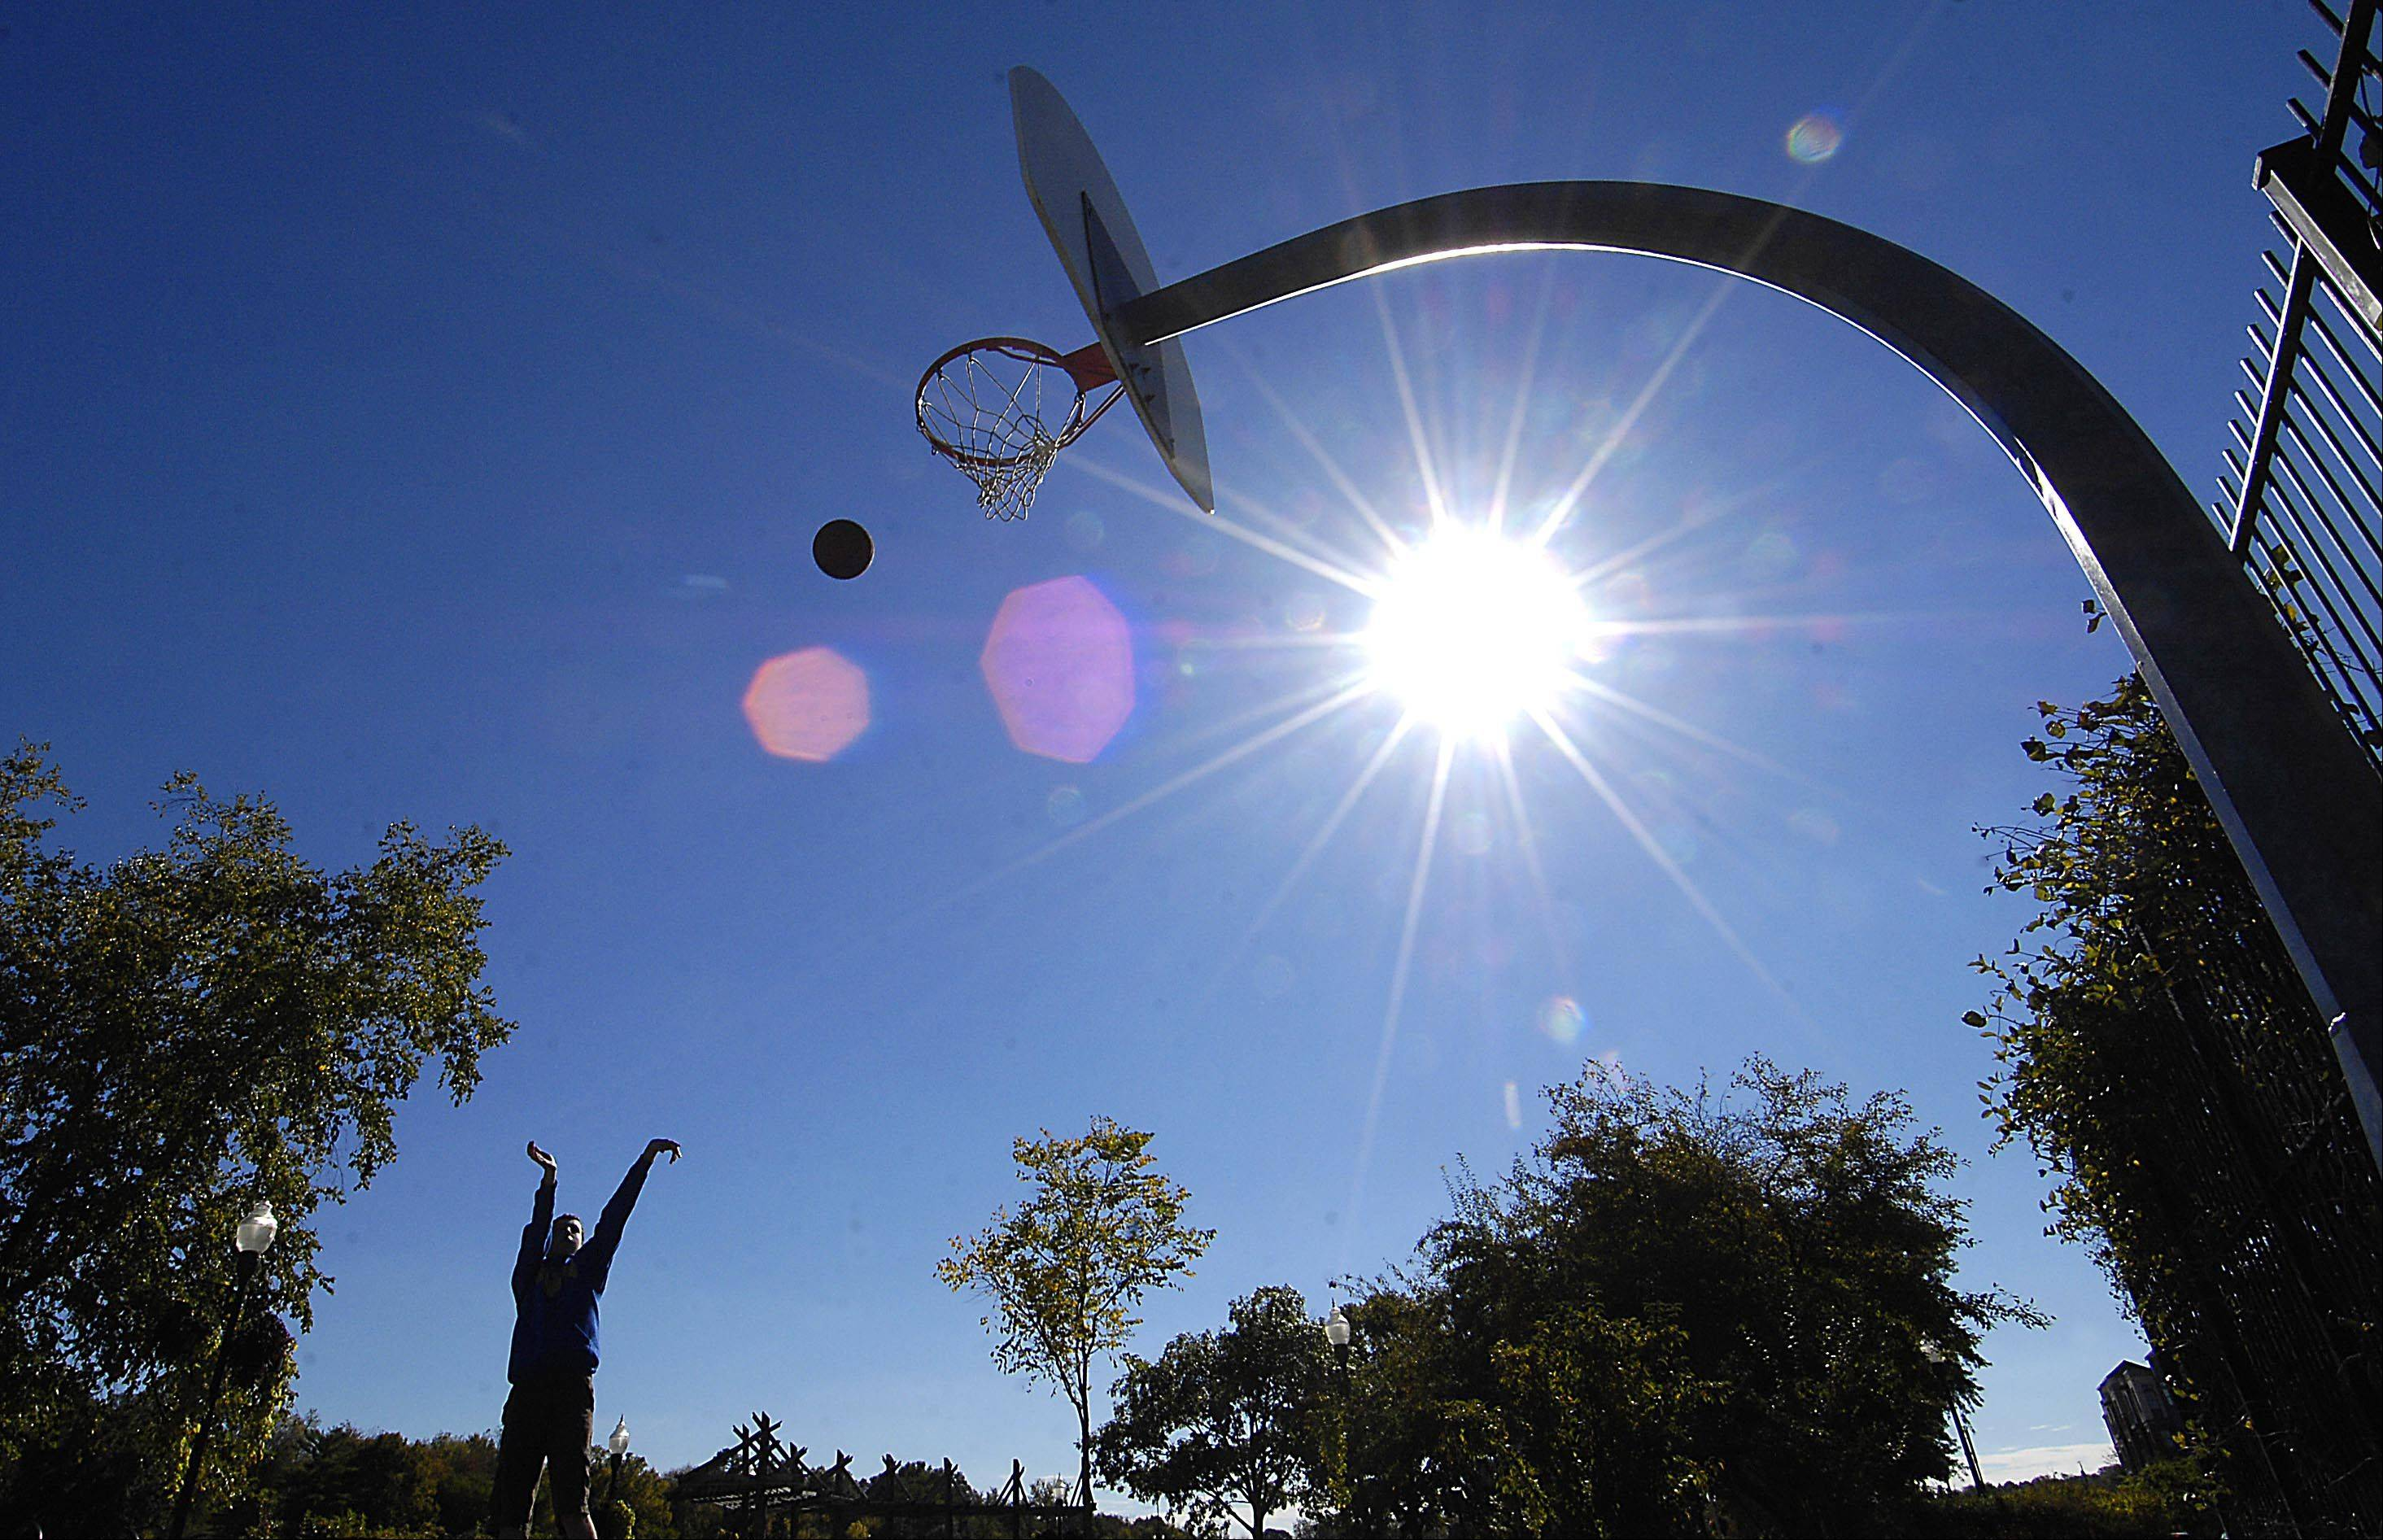 With the day off from school for Columbus Day, Gilbert Green, 14, launches long range basketball shots in River Front Park in Algonquin Monday afternoon. He was visiting with his family from Lake Forest.